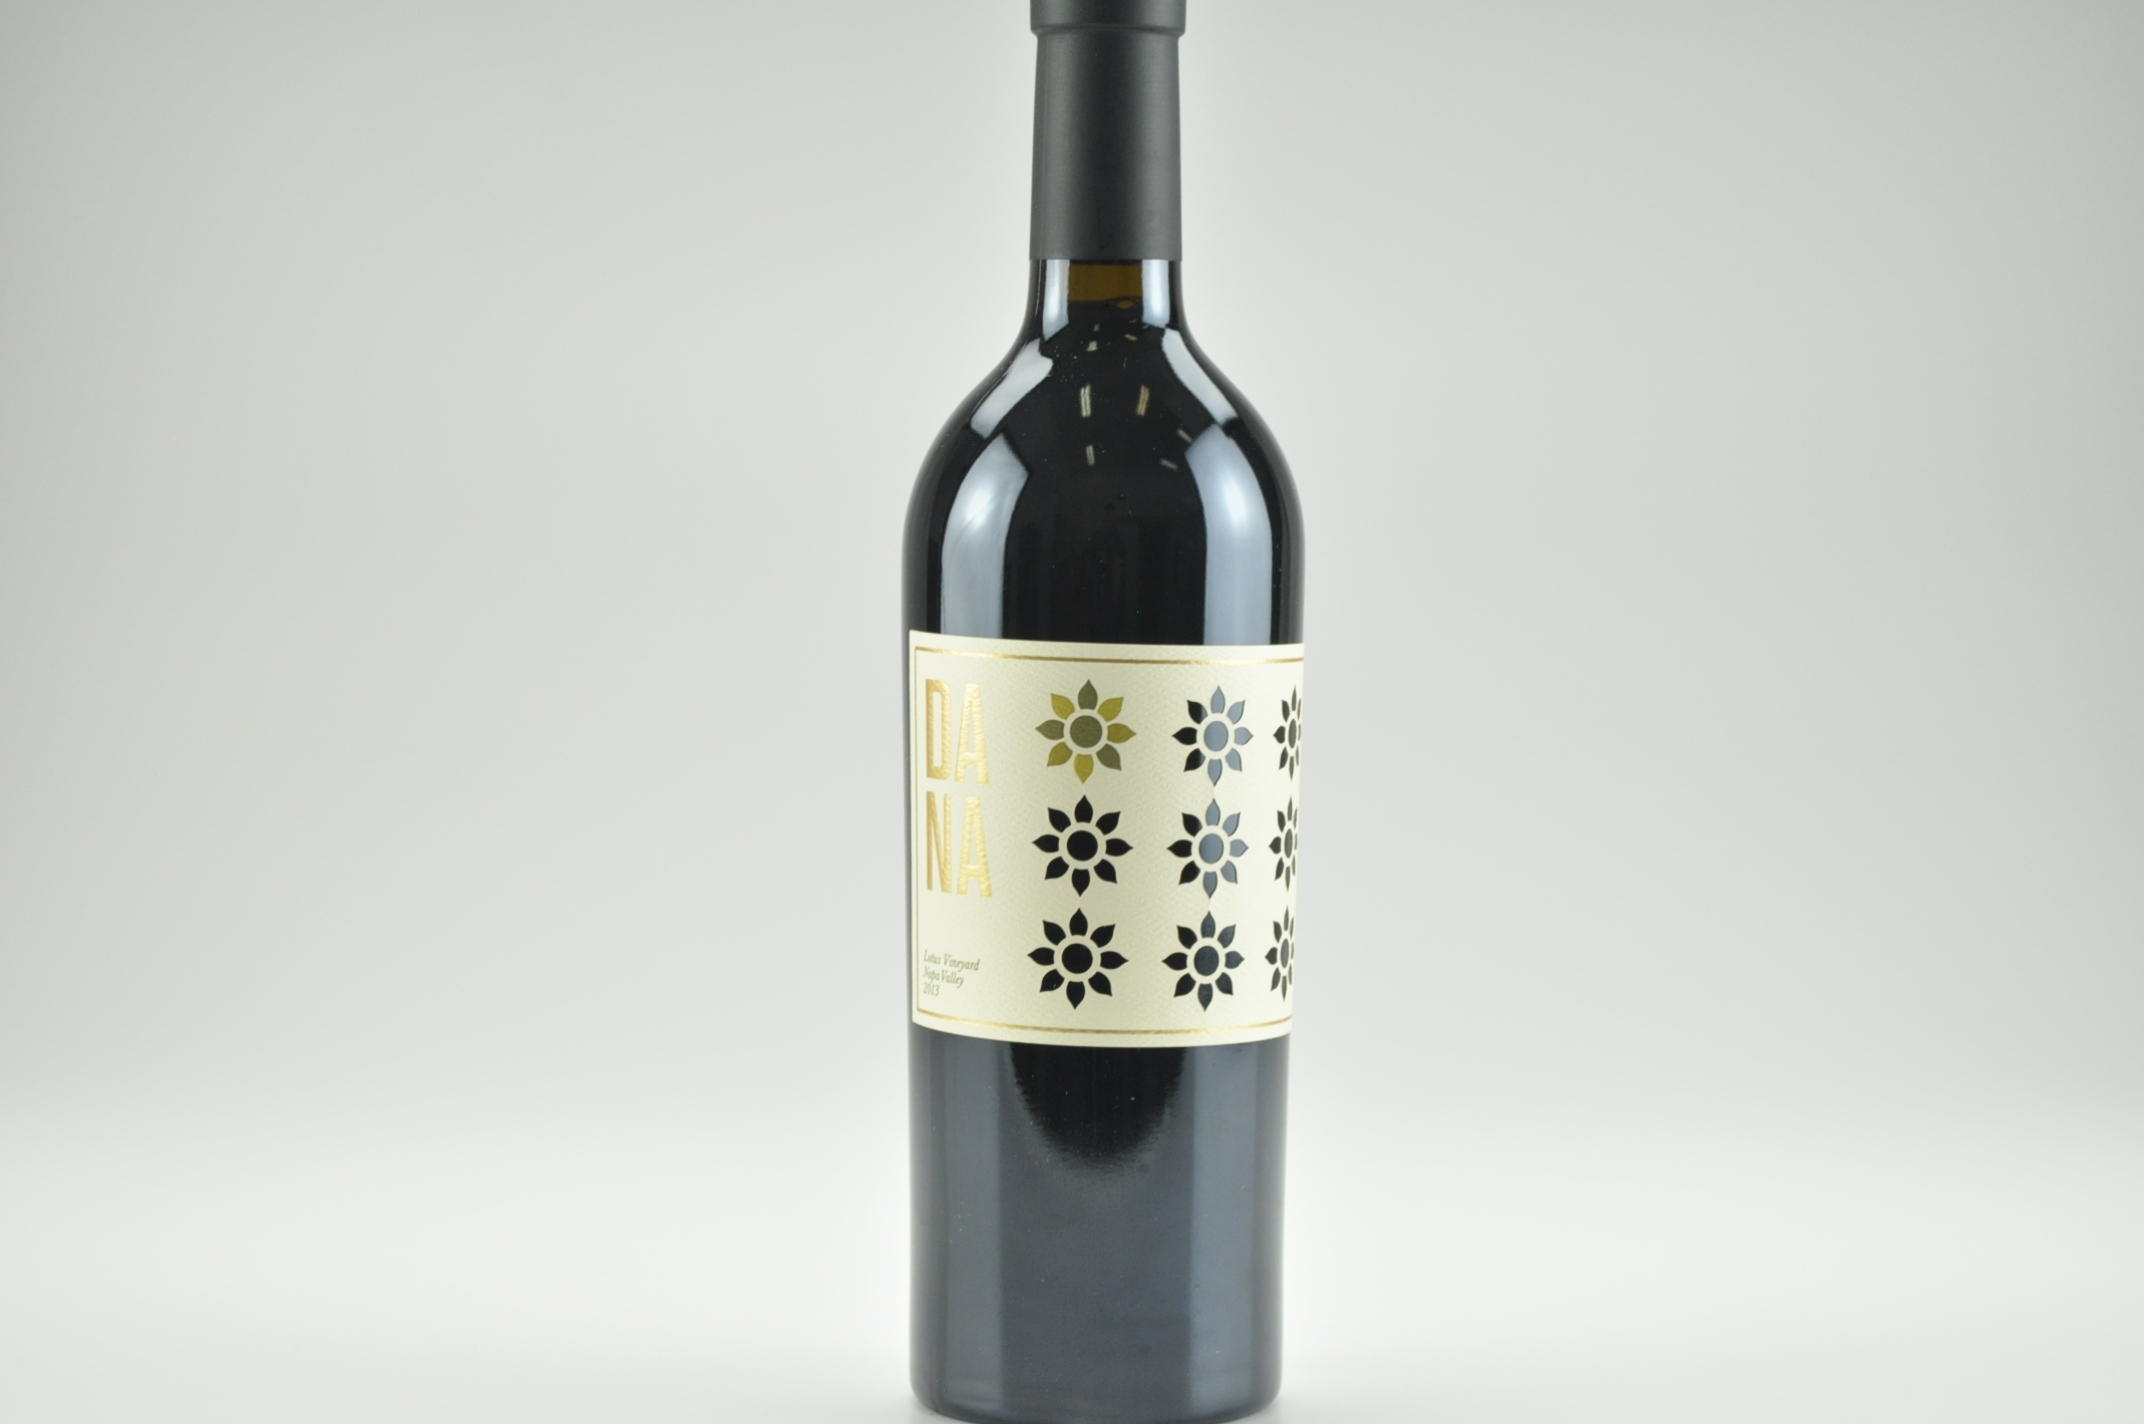 2012 Dana Estates Cabernet Sauvignon Lotus Vineyard, Napa Valley RP--98